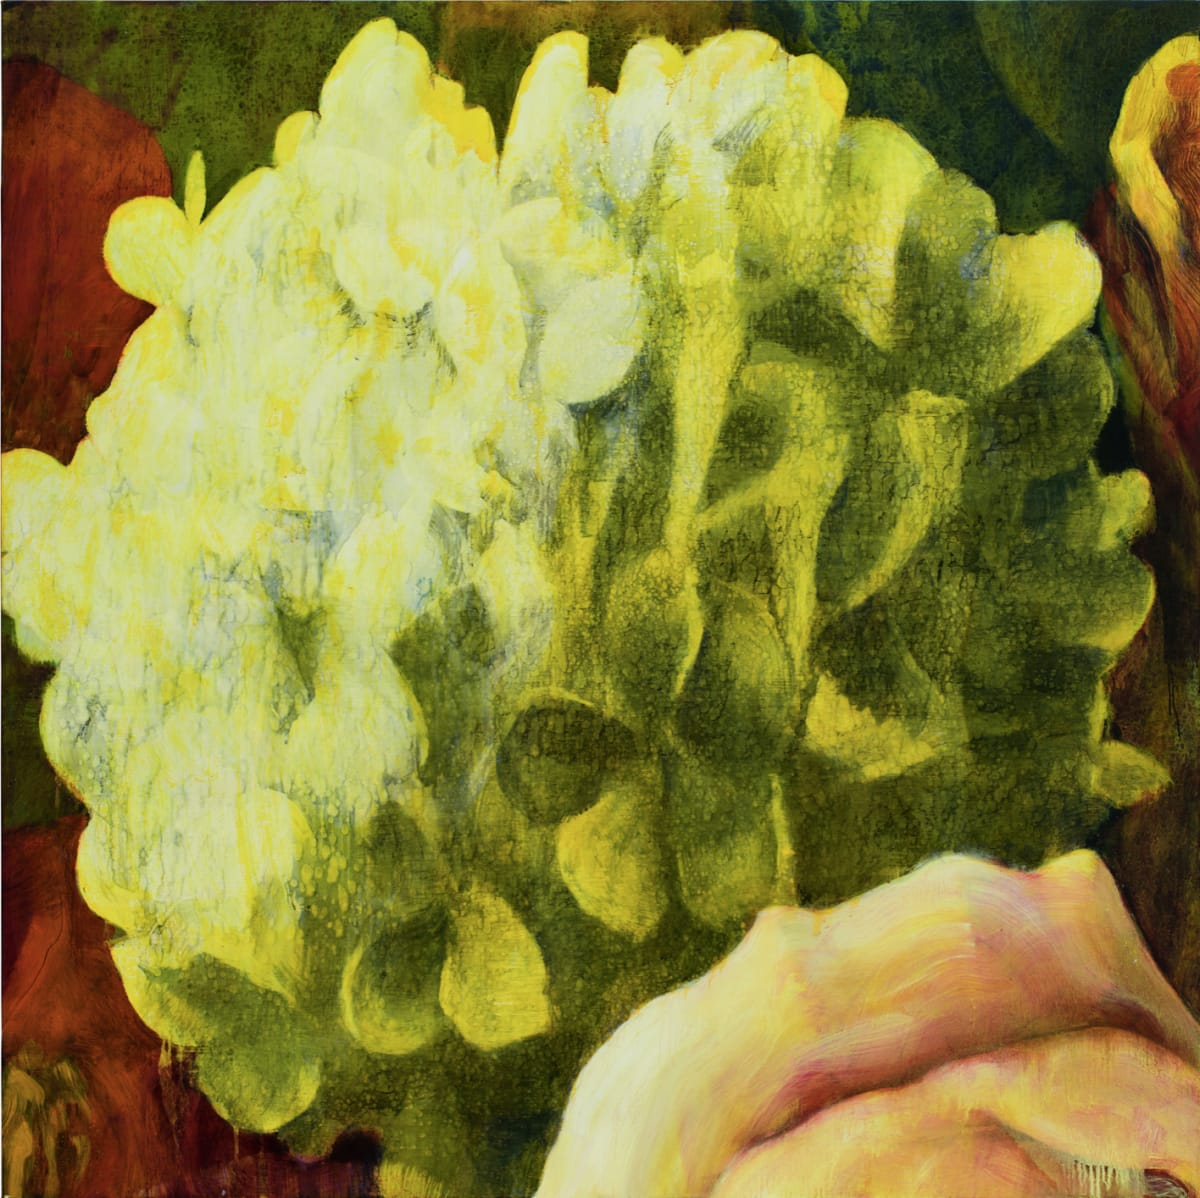 Tim Maguire Untitled 97U25 (Hydrangea), 1997 Oil on canvas signed and dated on stretcher 150 x 150 cm